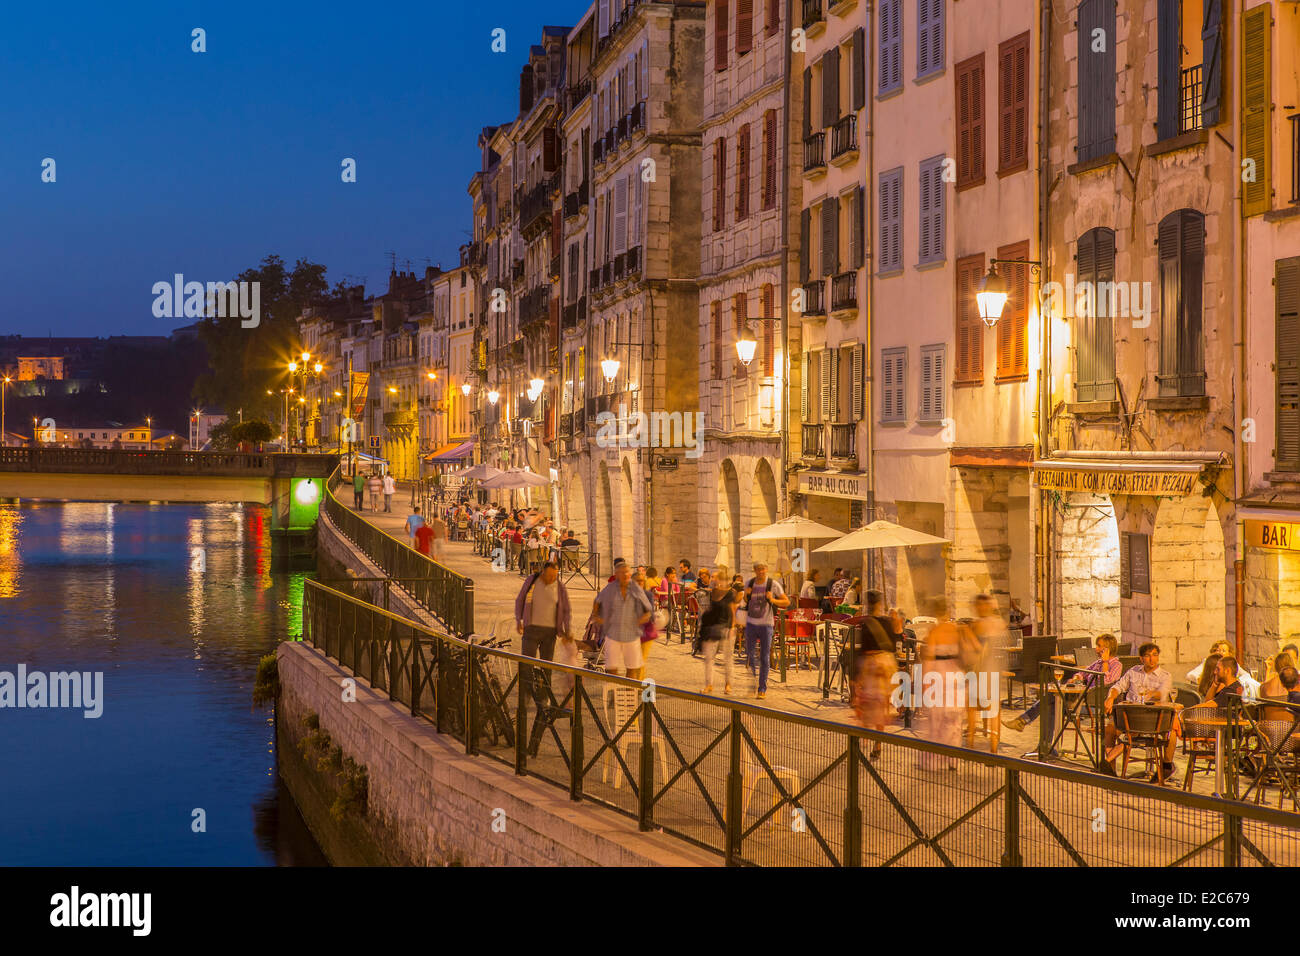 France, Pyrenees Atlantiques, Bayonne, quay of Corsaires, traditional architecture on Nive river banks - Stock Image